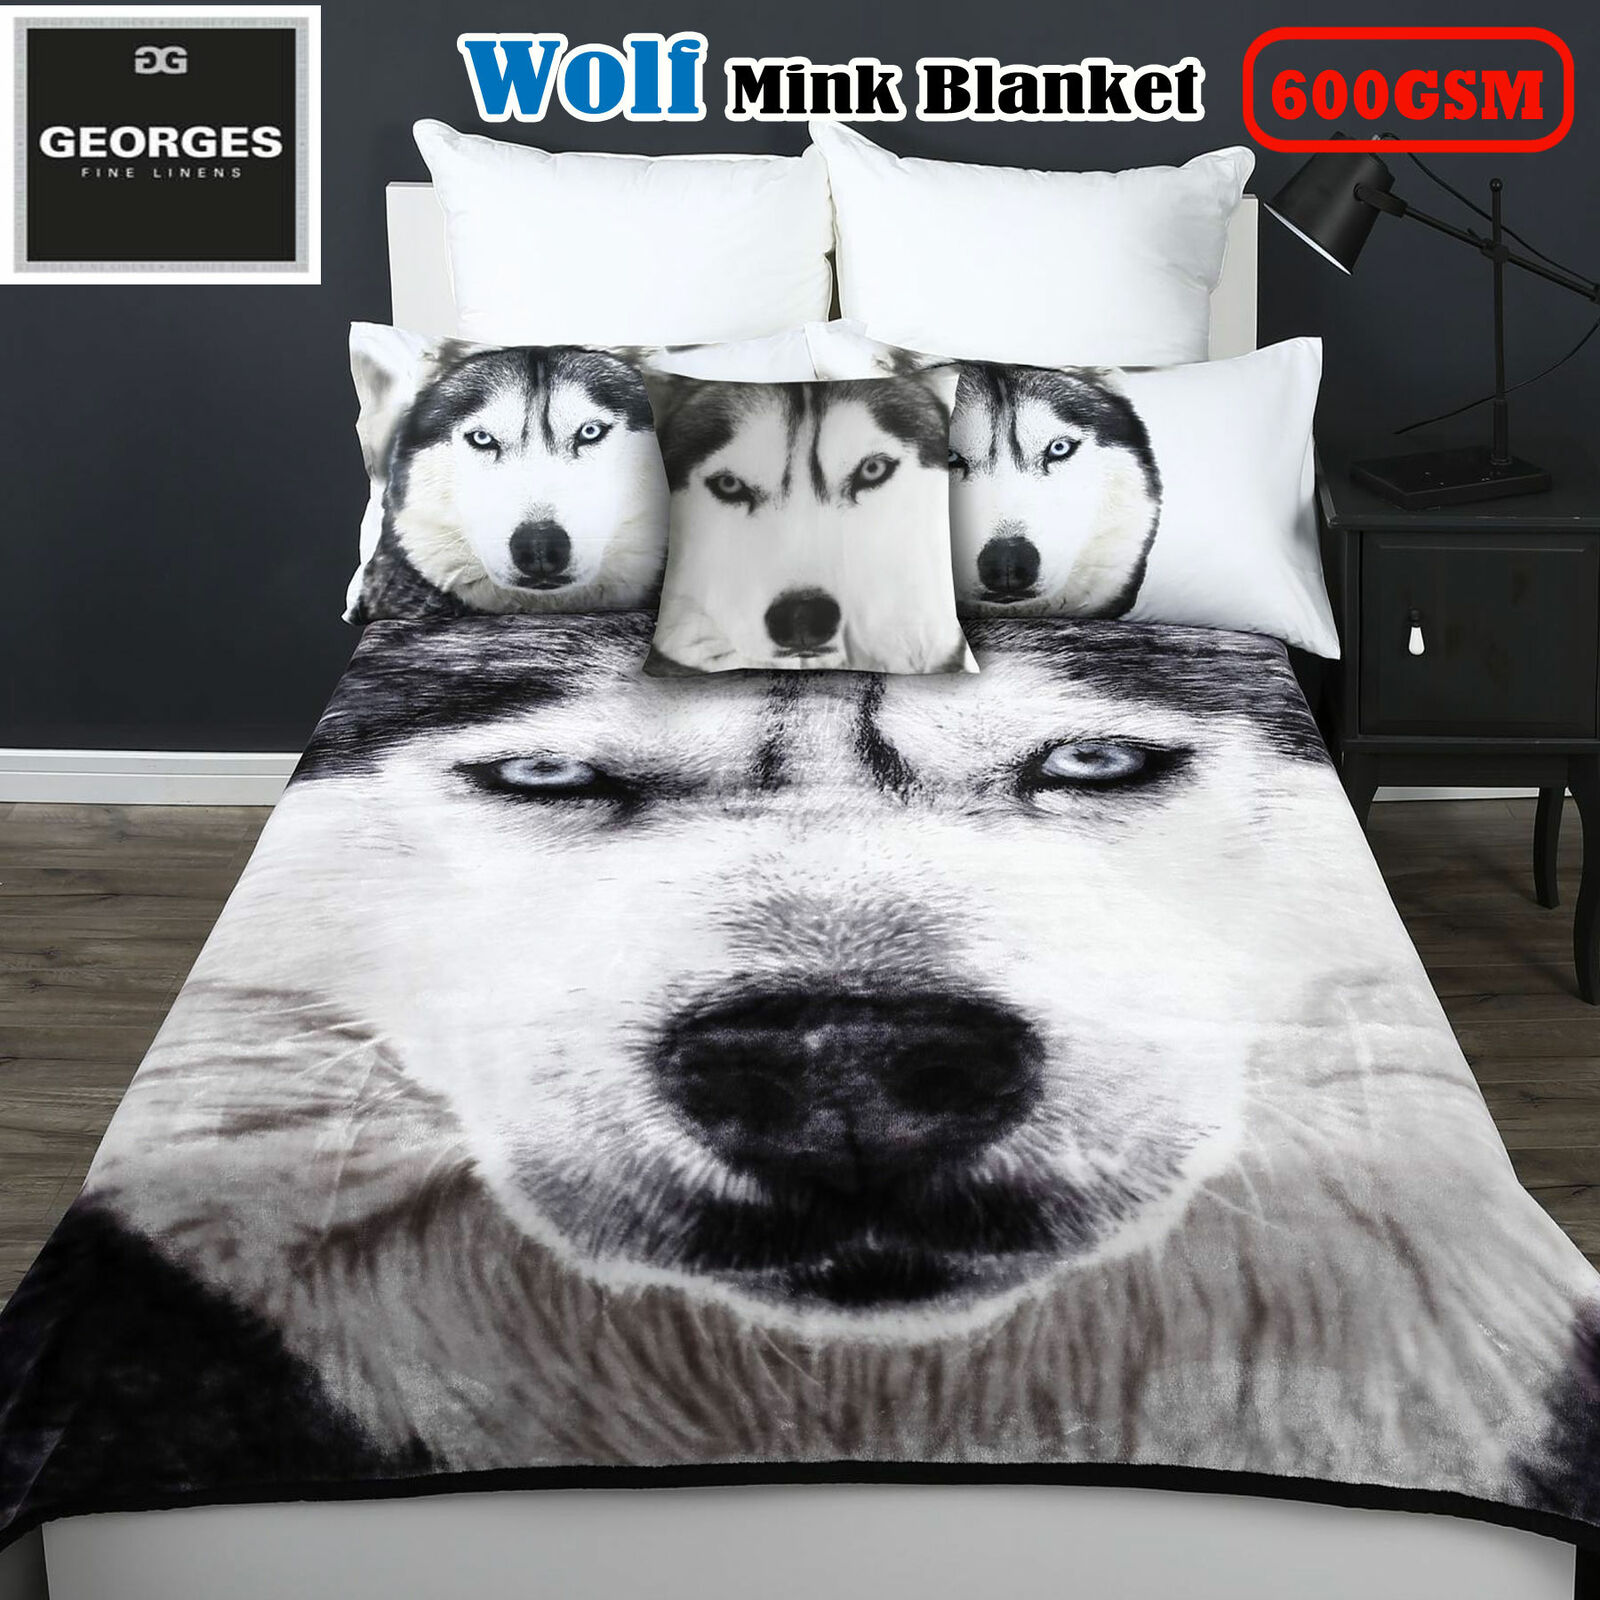 600GSM WOLF Winter Mink Blanket - Choice of SINGLE or QUEEN